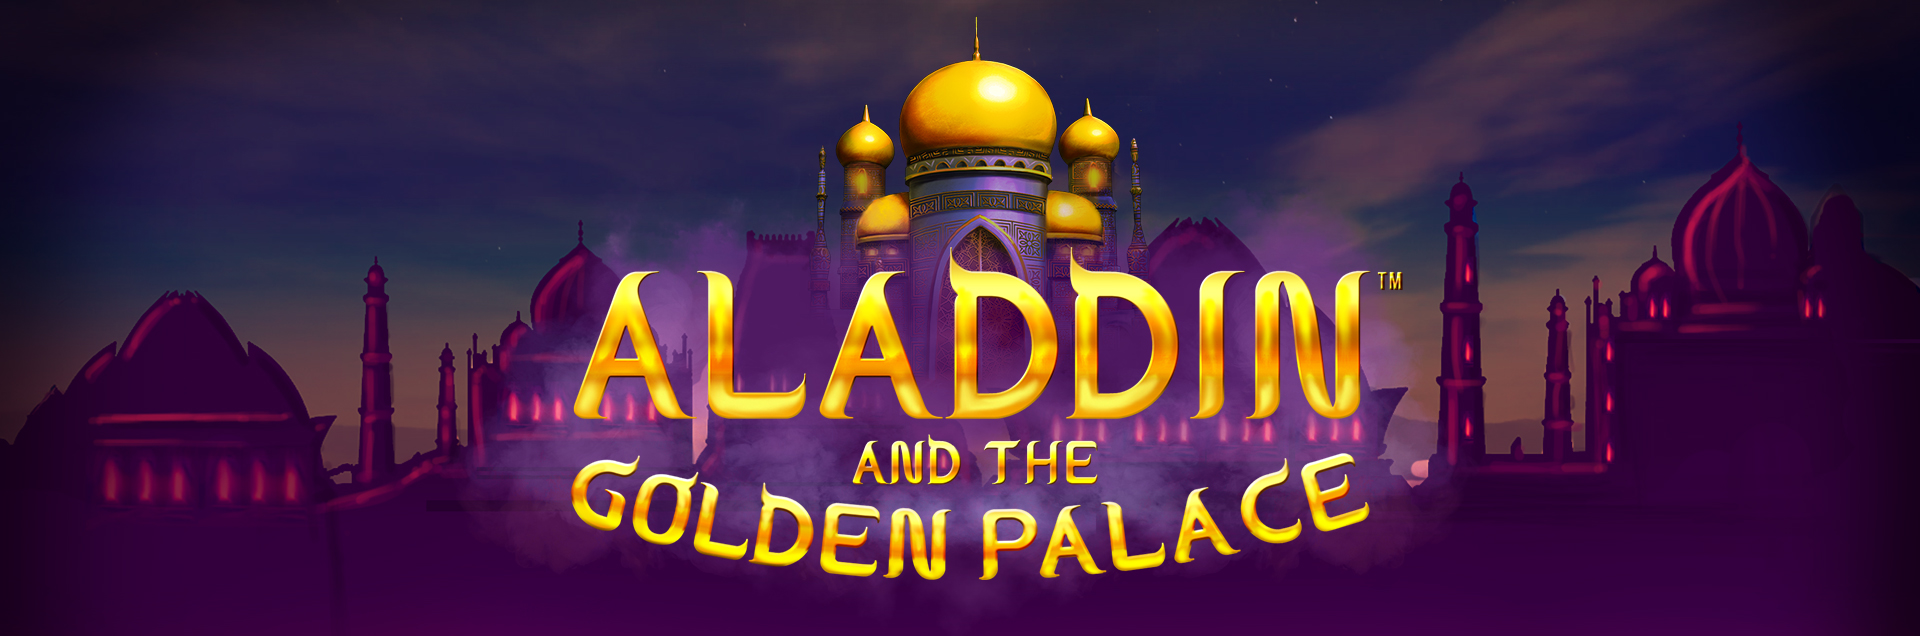 Aladdin and the Golden Palace